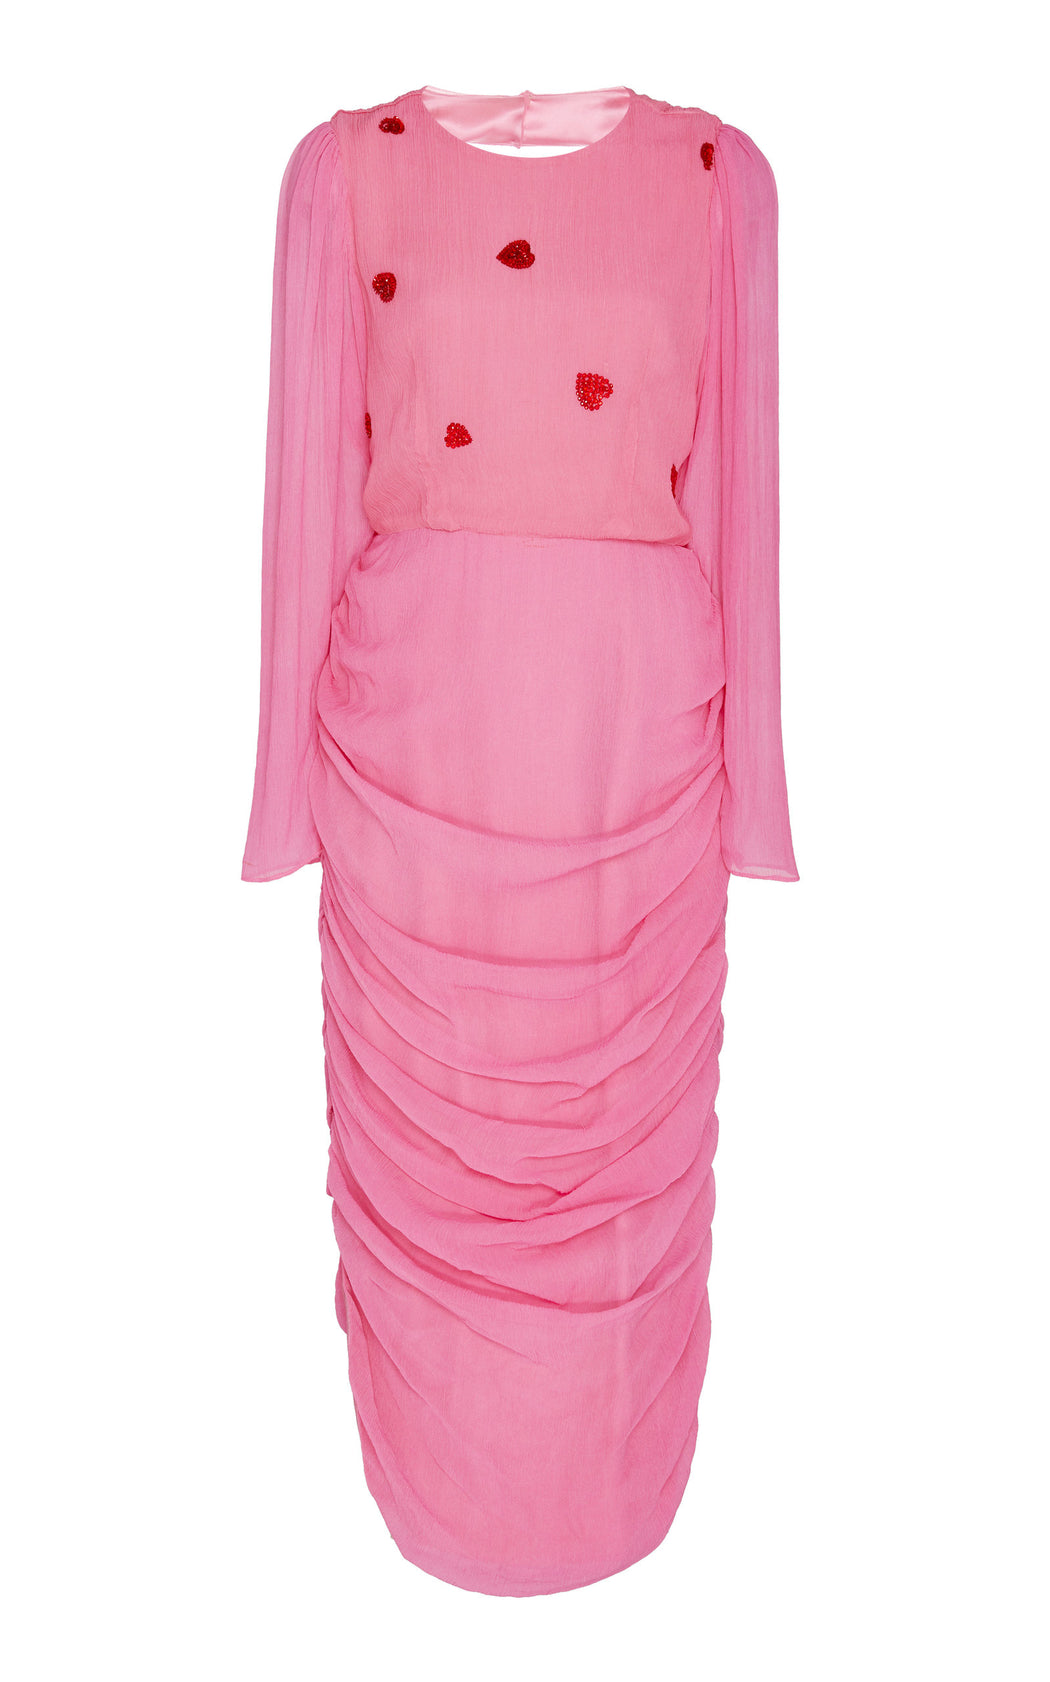 Love Train Heart Embellished Pink Silk Dress